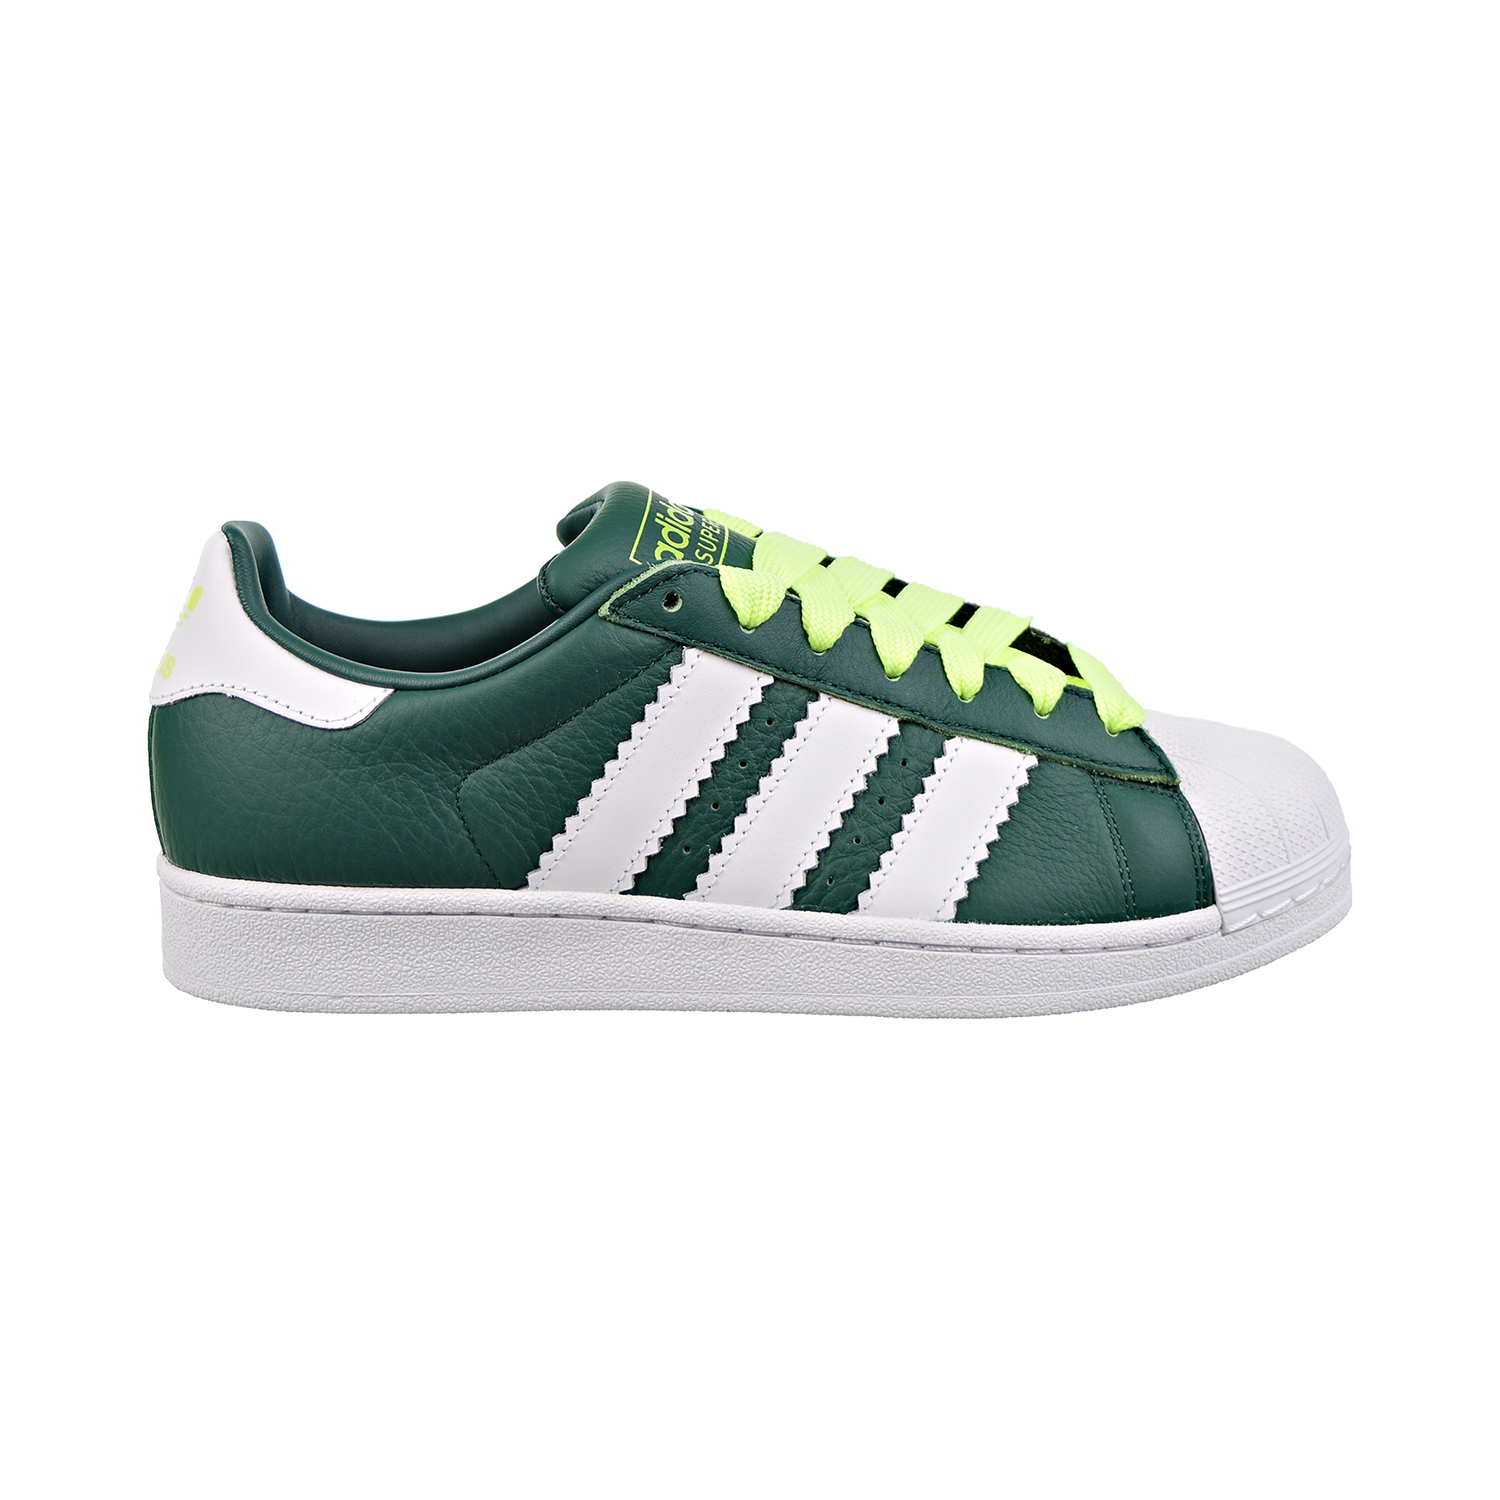 adidas superstar shoes hd